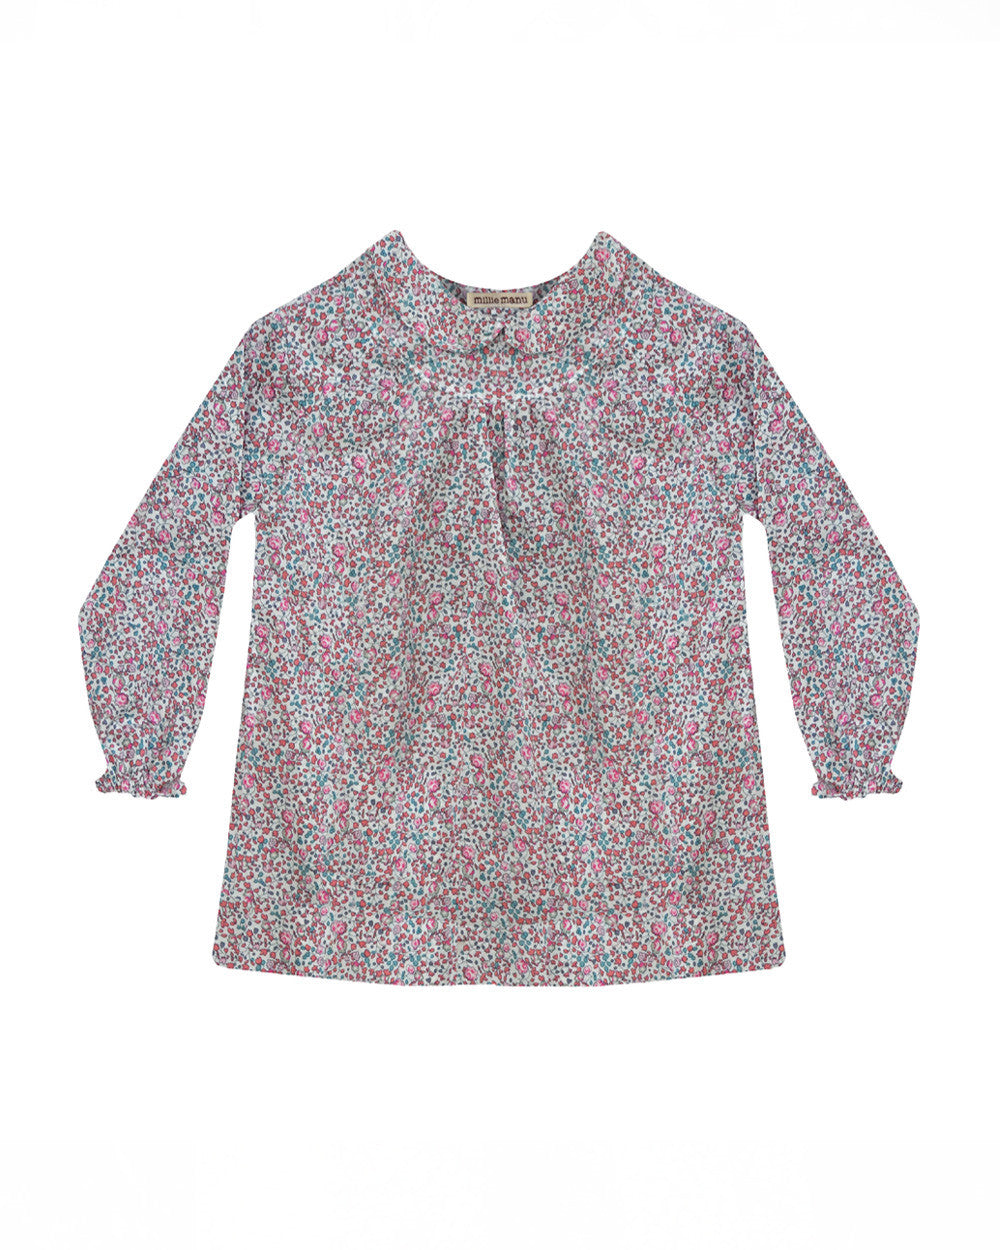 lucia blouse - pink eloise